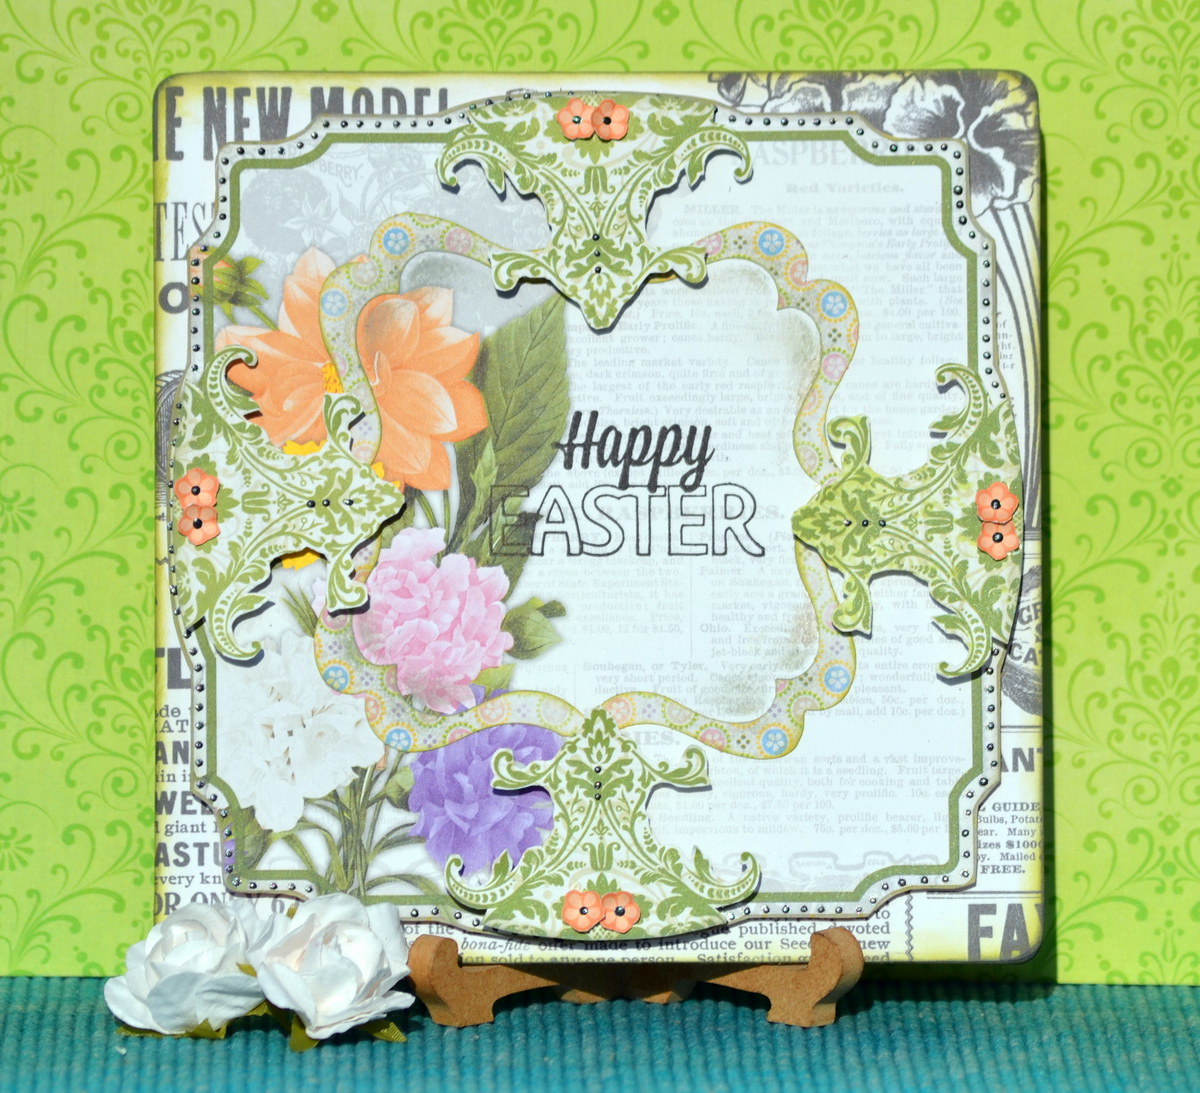 Happy Easter Greetings Handmade Cards Featuring Cottontail Double